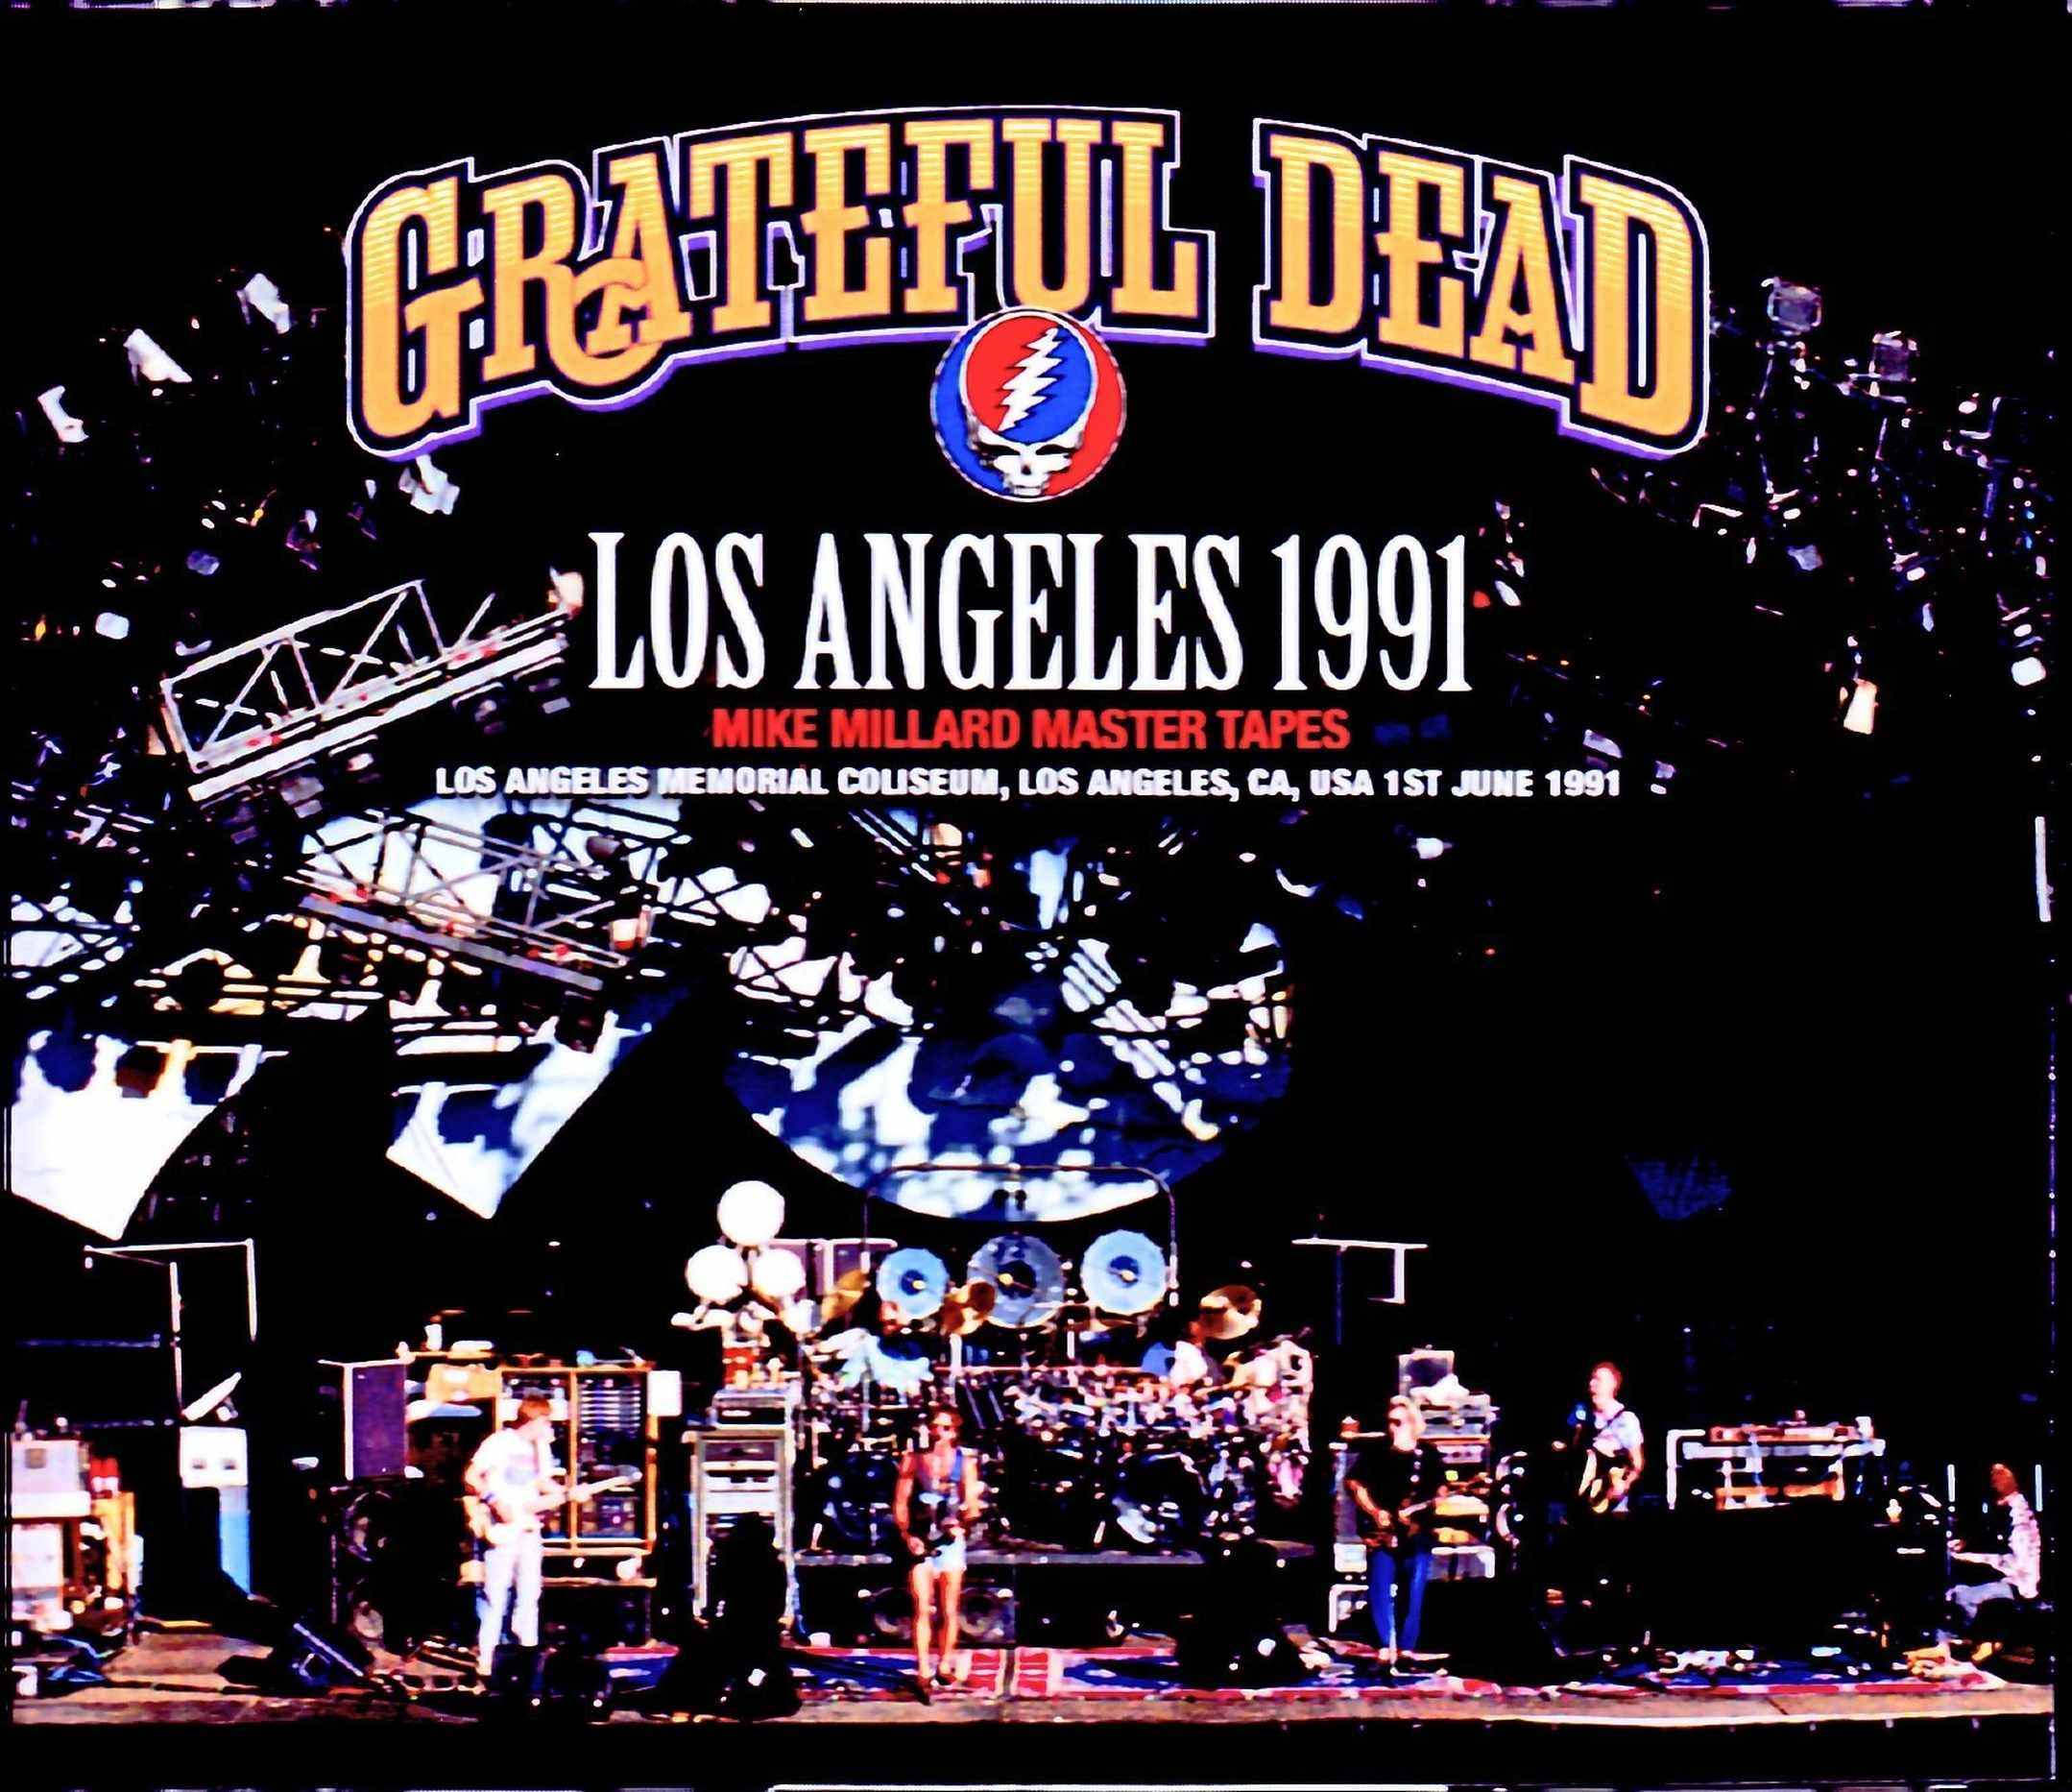 Grateful Dead グレイトフル・デッド/CA,USA 1991 Mike Millard Master Tapes